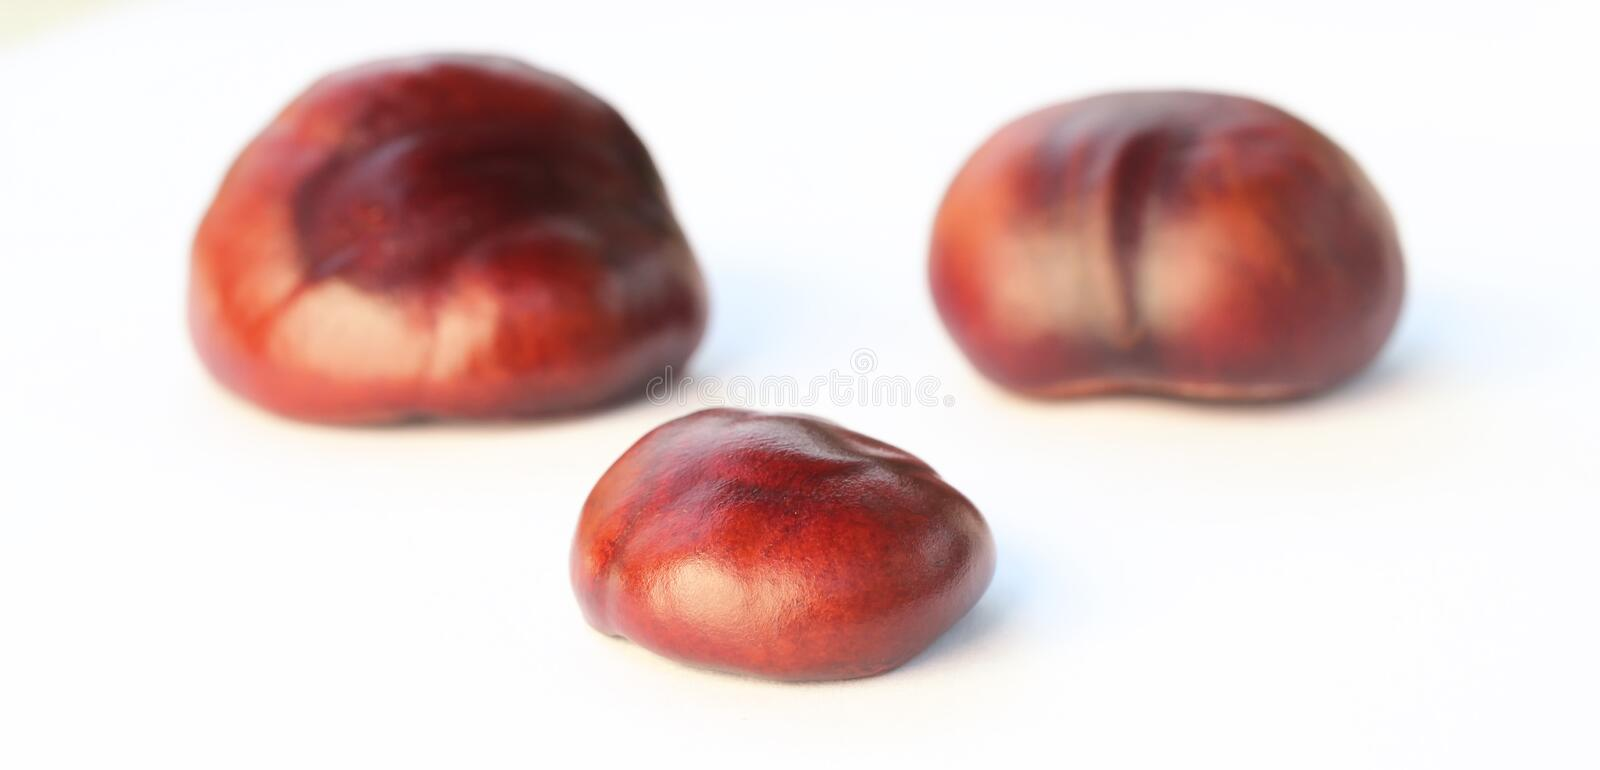 Chestnuts isolated on white background.  stock photo